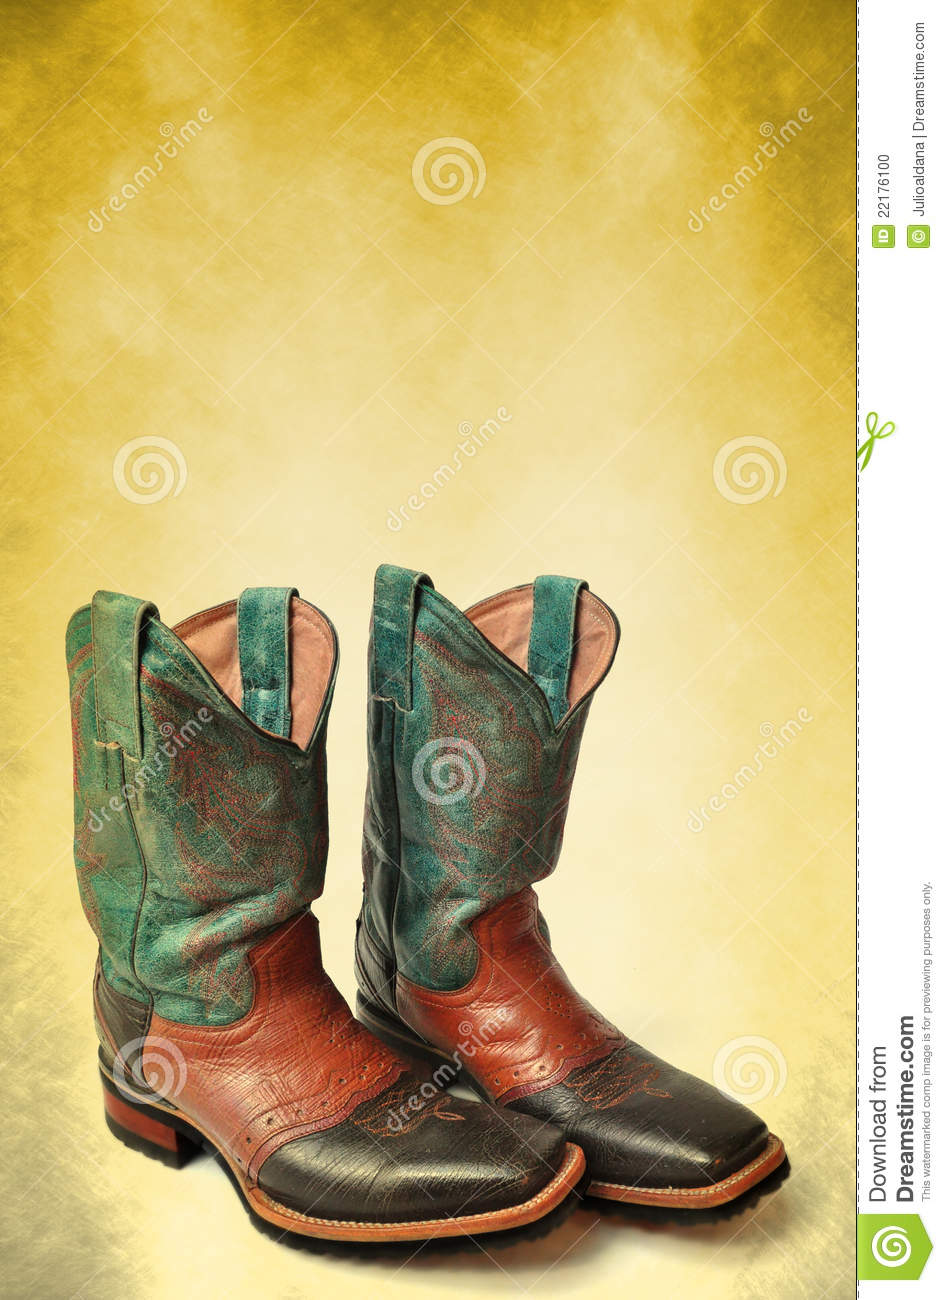 Vintage Cowboy Boots Poster - Card Template Stock Photo - Image of ...